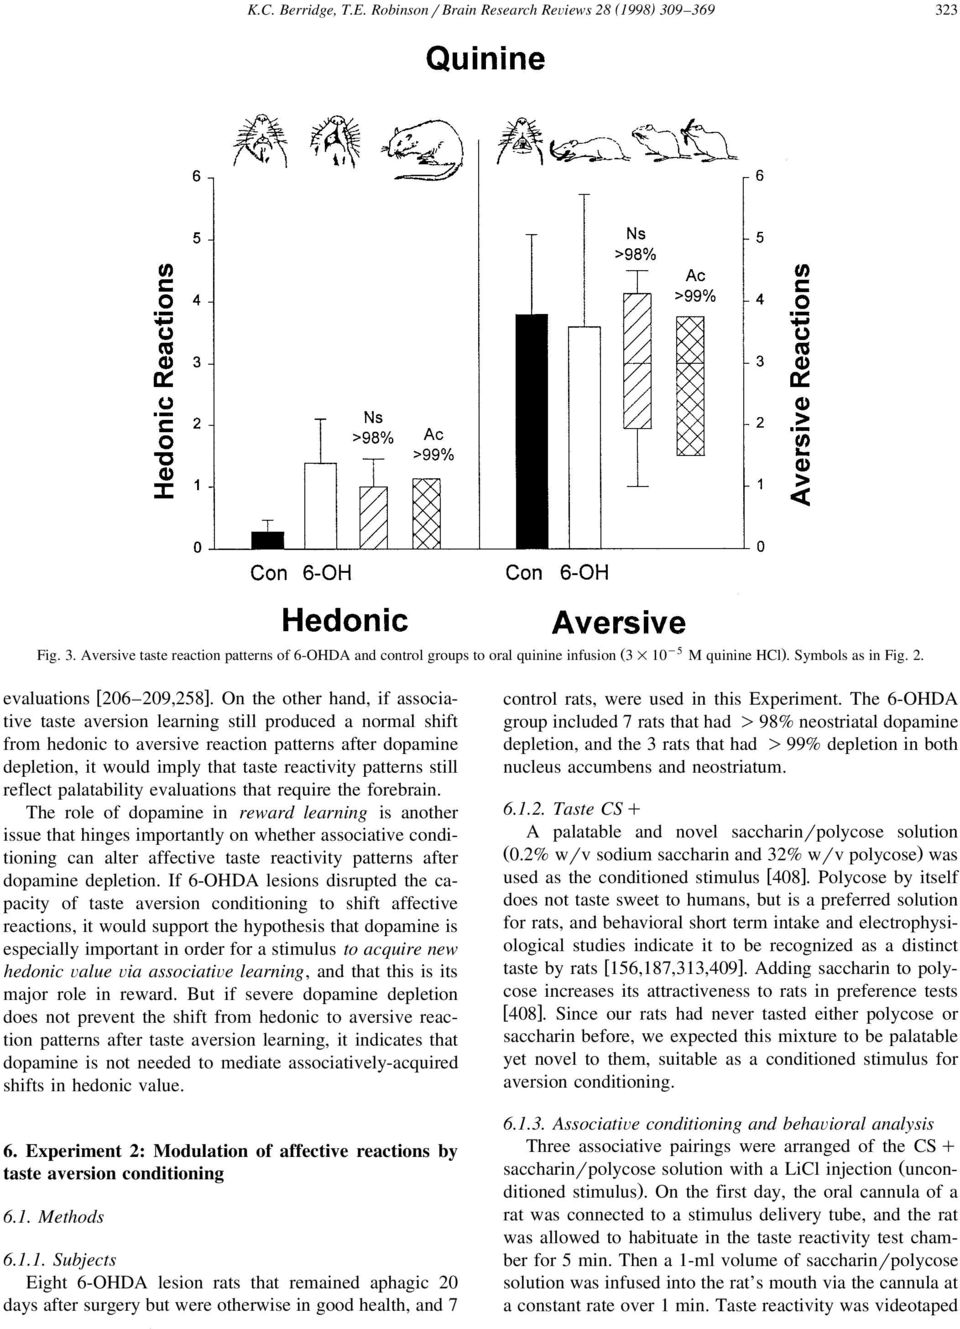 On the other hand, if associative taste aversion learning still produced a normal shift from hedonic to aversive reaction patterns after dopamine depletion, it would imply that taste reactivity